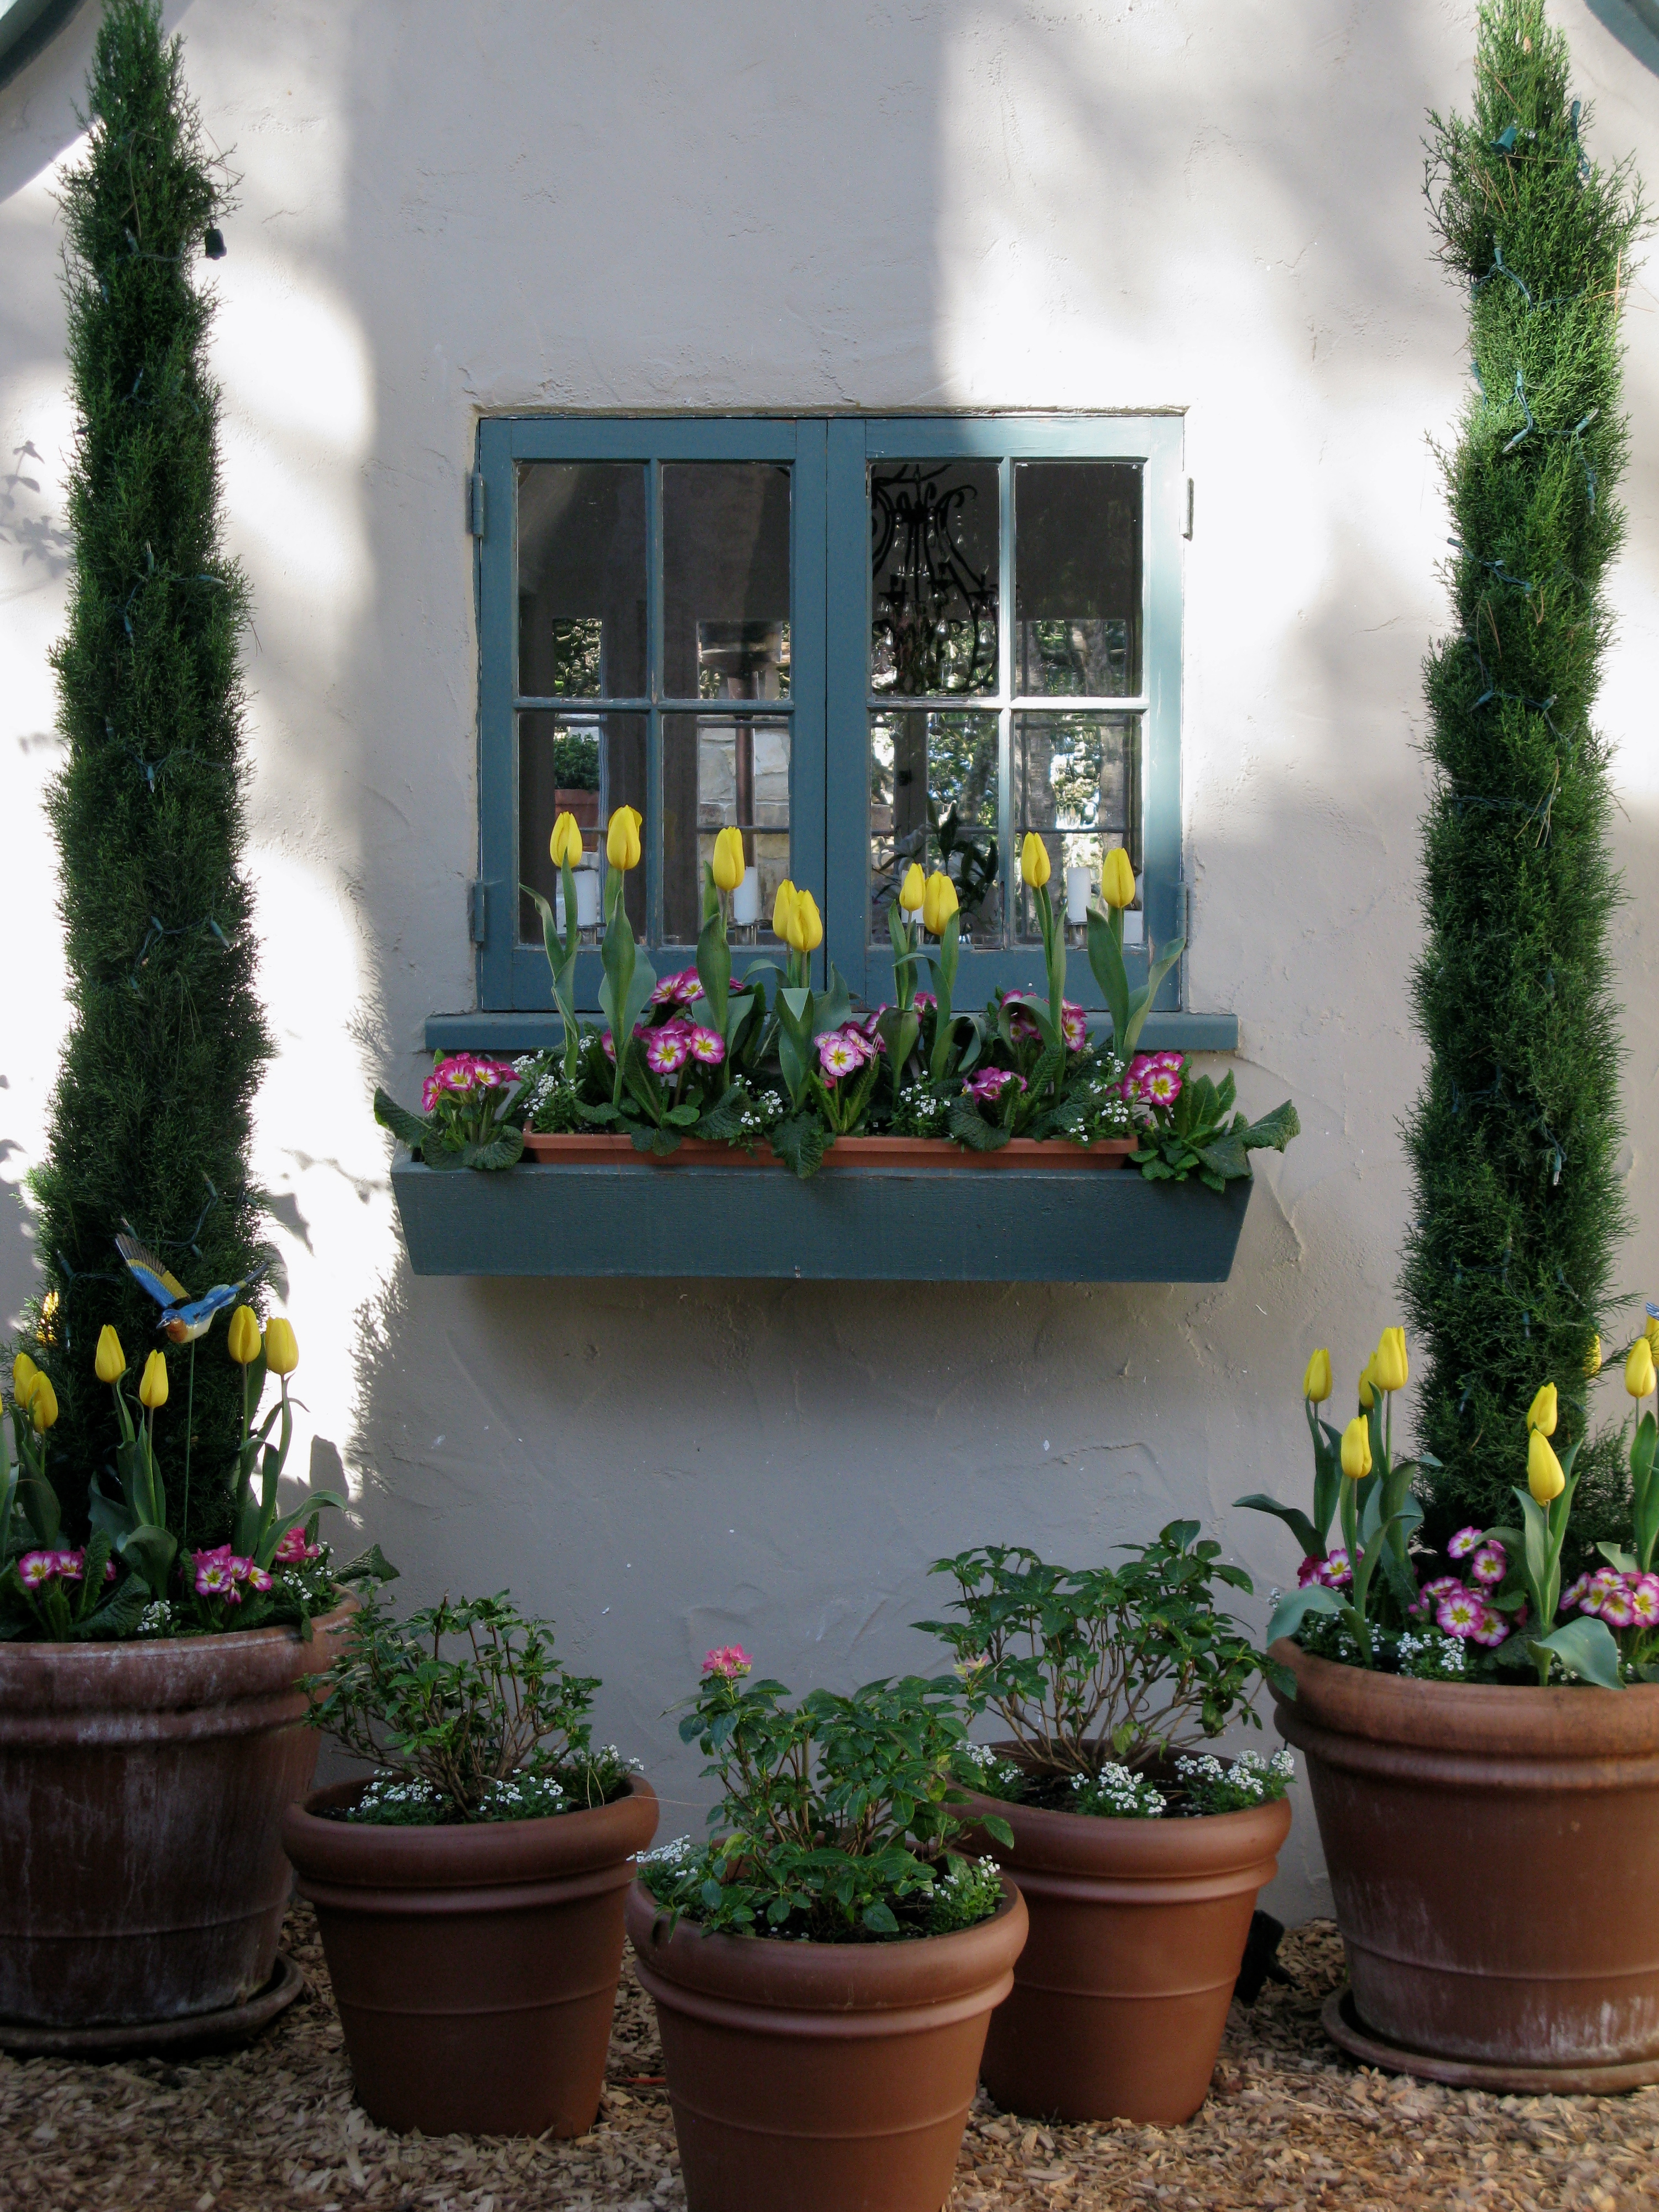 WINDOW BOXES IN CARMEL – ADDING CHARM TO THE FAIRYTALE COTTAGE